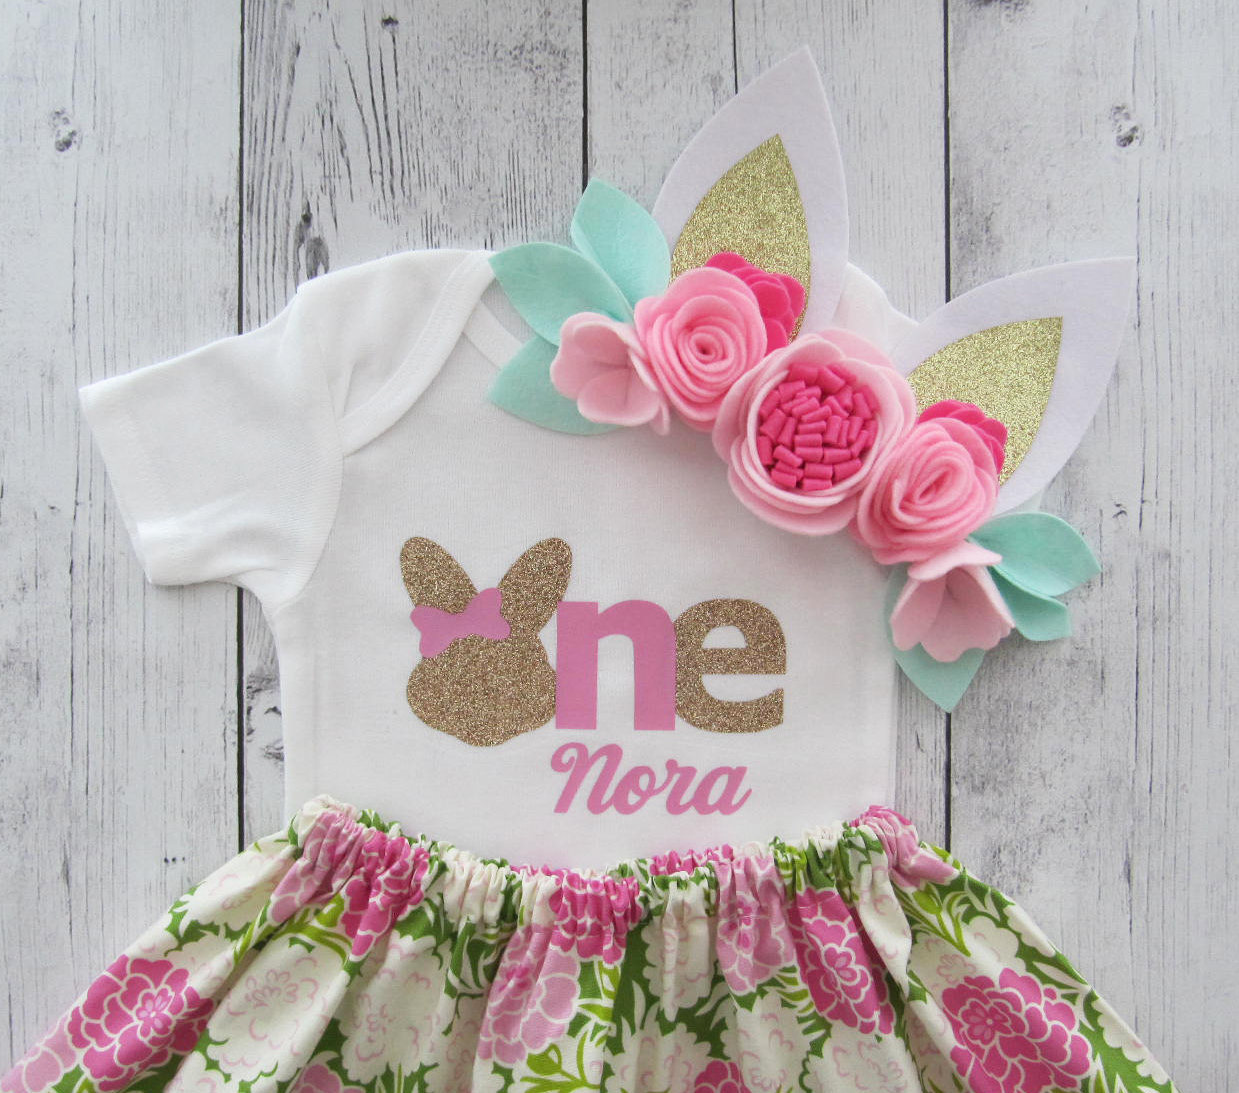 Shabby Chic Bunny First Birthday Outfit in Pink Mums Print - some bunny is one, girl birthday outfit, bunny 1st birthday outfit girl pink